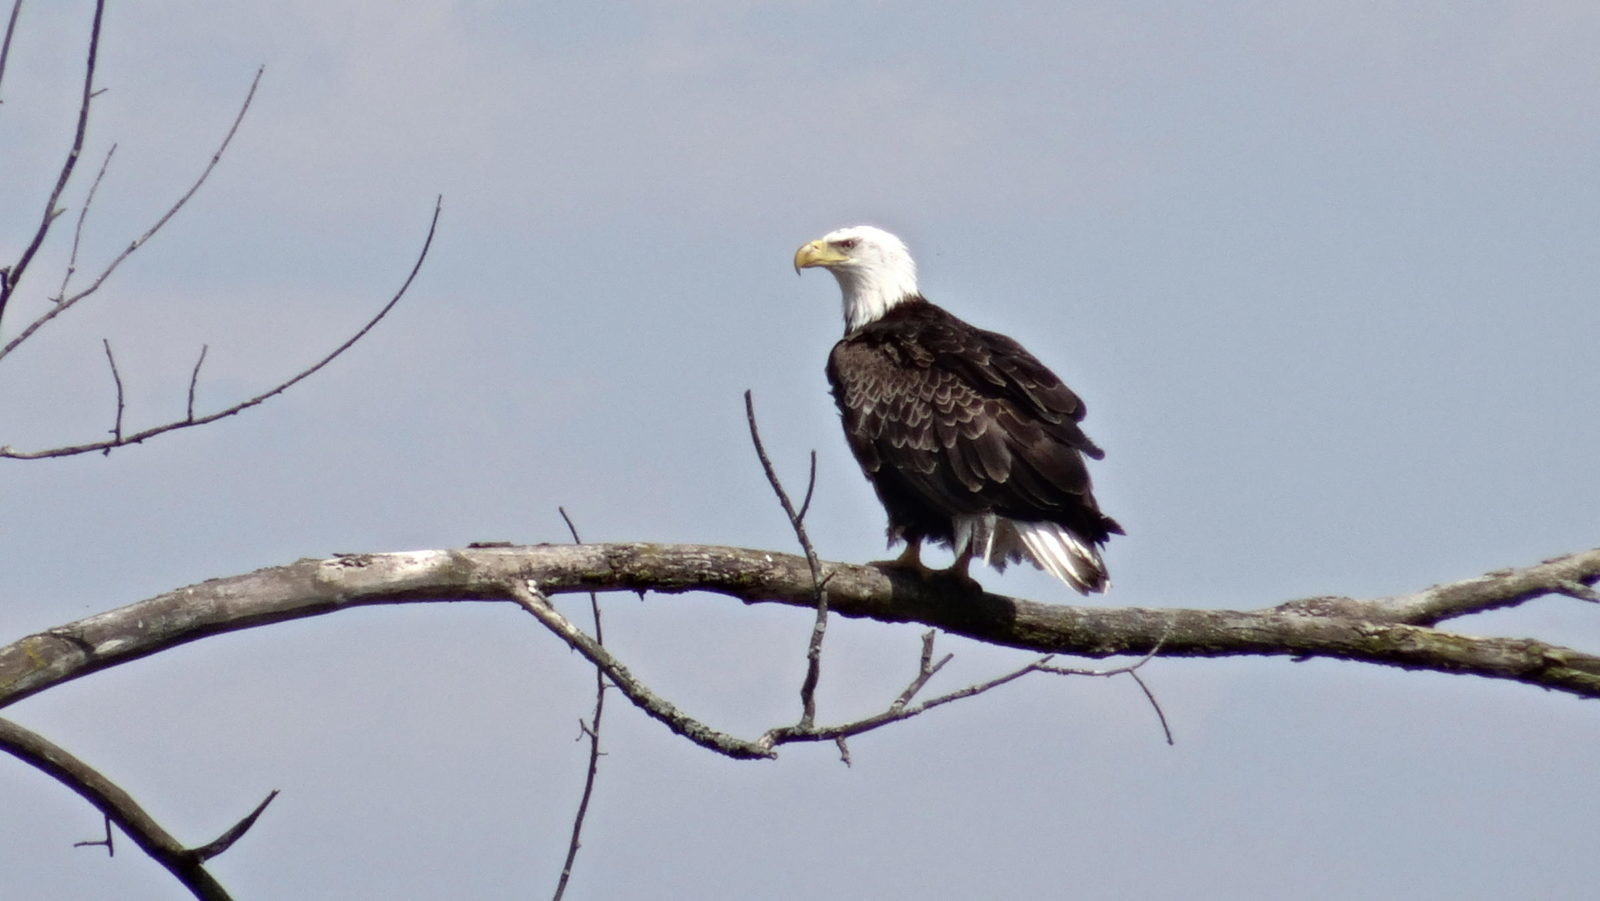 Bald Eagles have occasionally been spotted on the property.